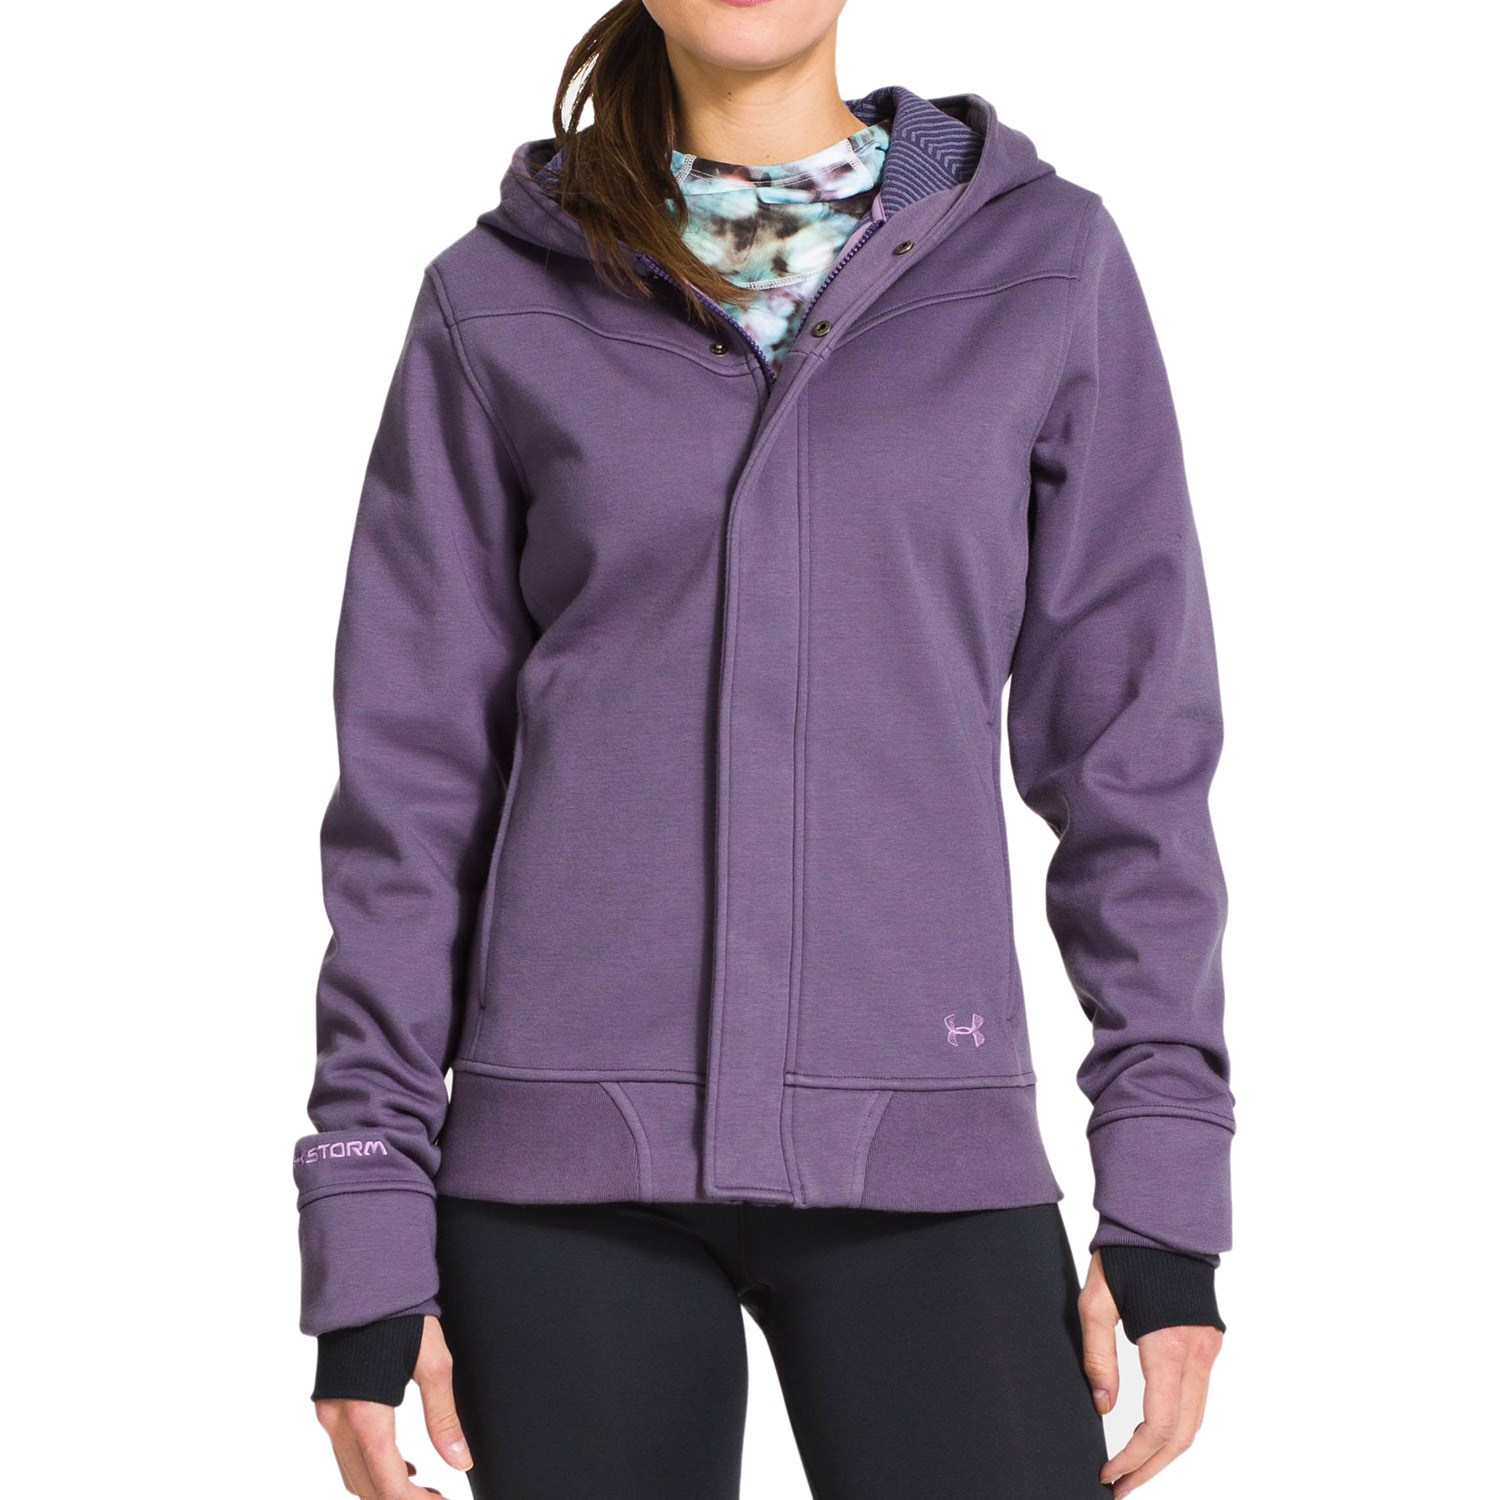 Under Armour Shoes For Women Sale They have under armor clothing